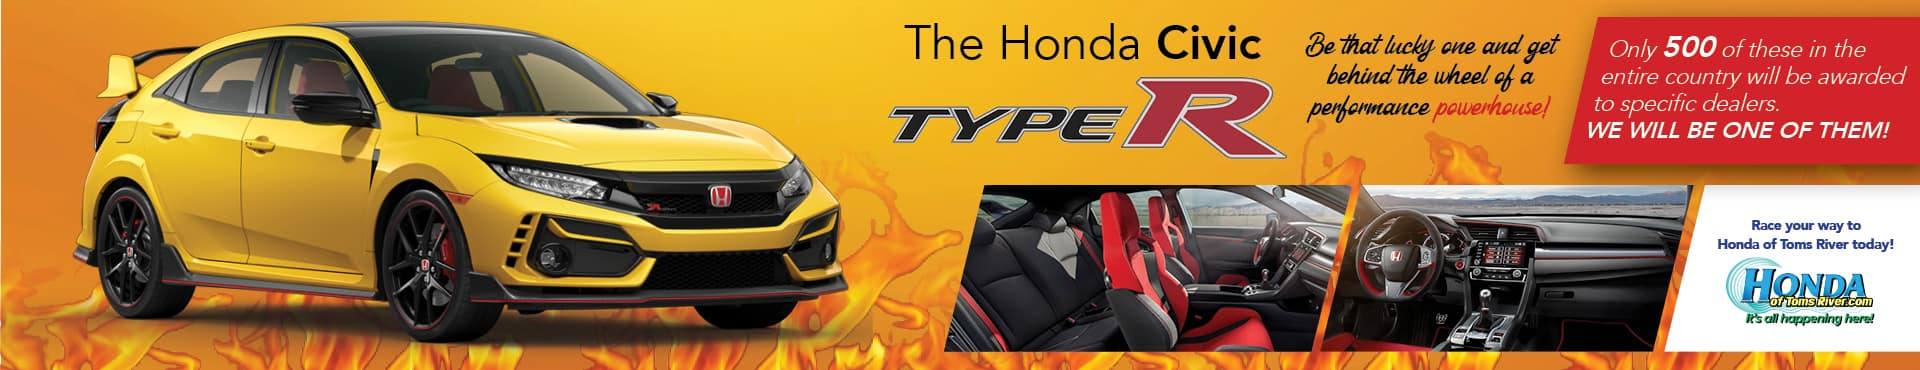 Special Edition HTR Sliders HOTR-1179 Civic Type R website social banners_4